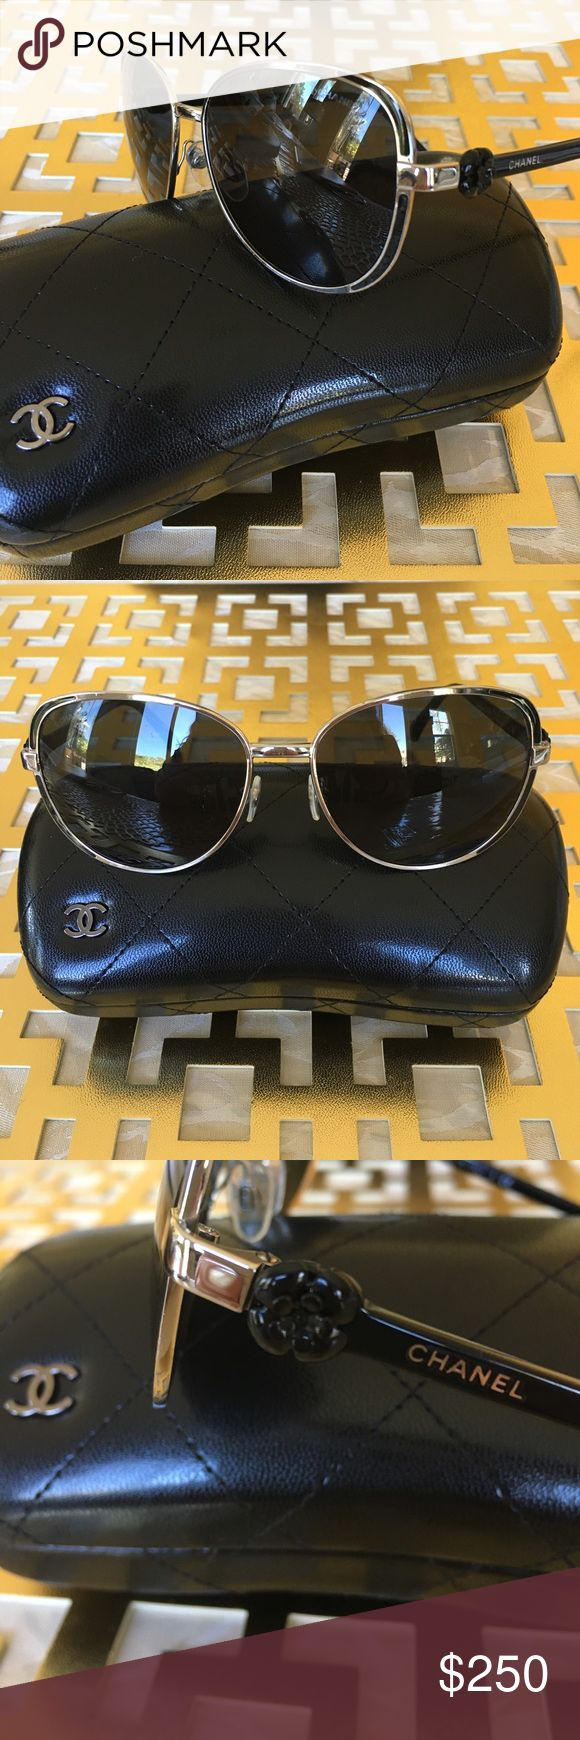 Chanel Camellia Round Susglasses Found les than 1mm scratch on the flame of right side. Glasses are in solid condition with beautiful brand names on. Be the Coco. CHANEL Accessories Sunglasses